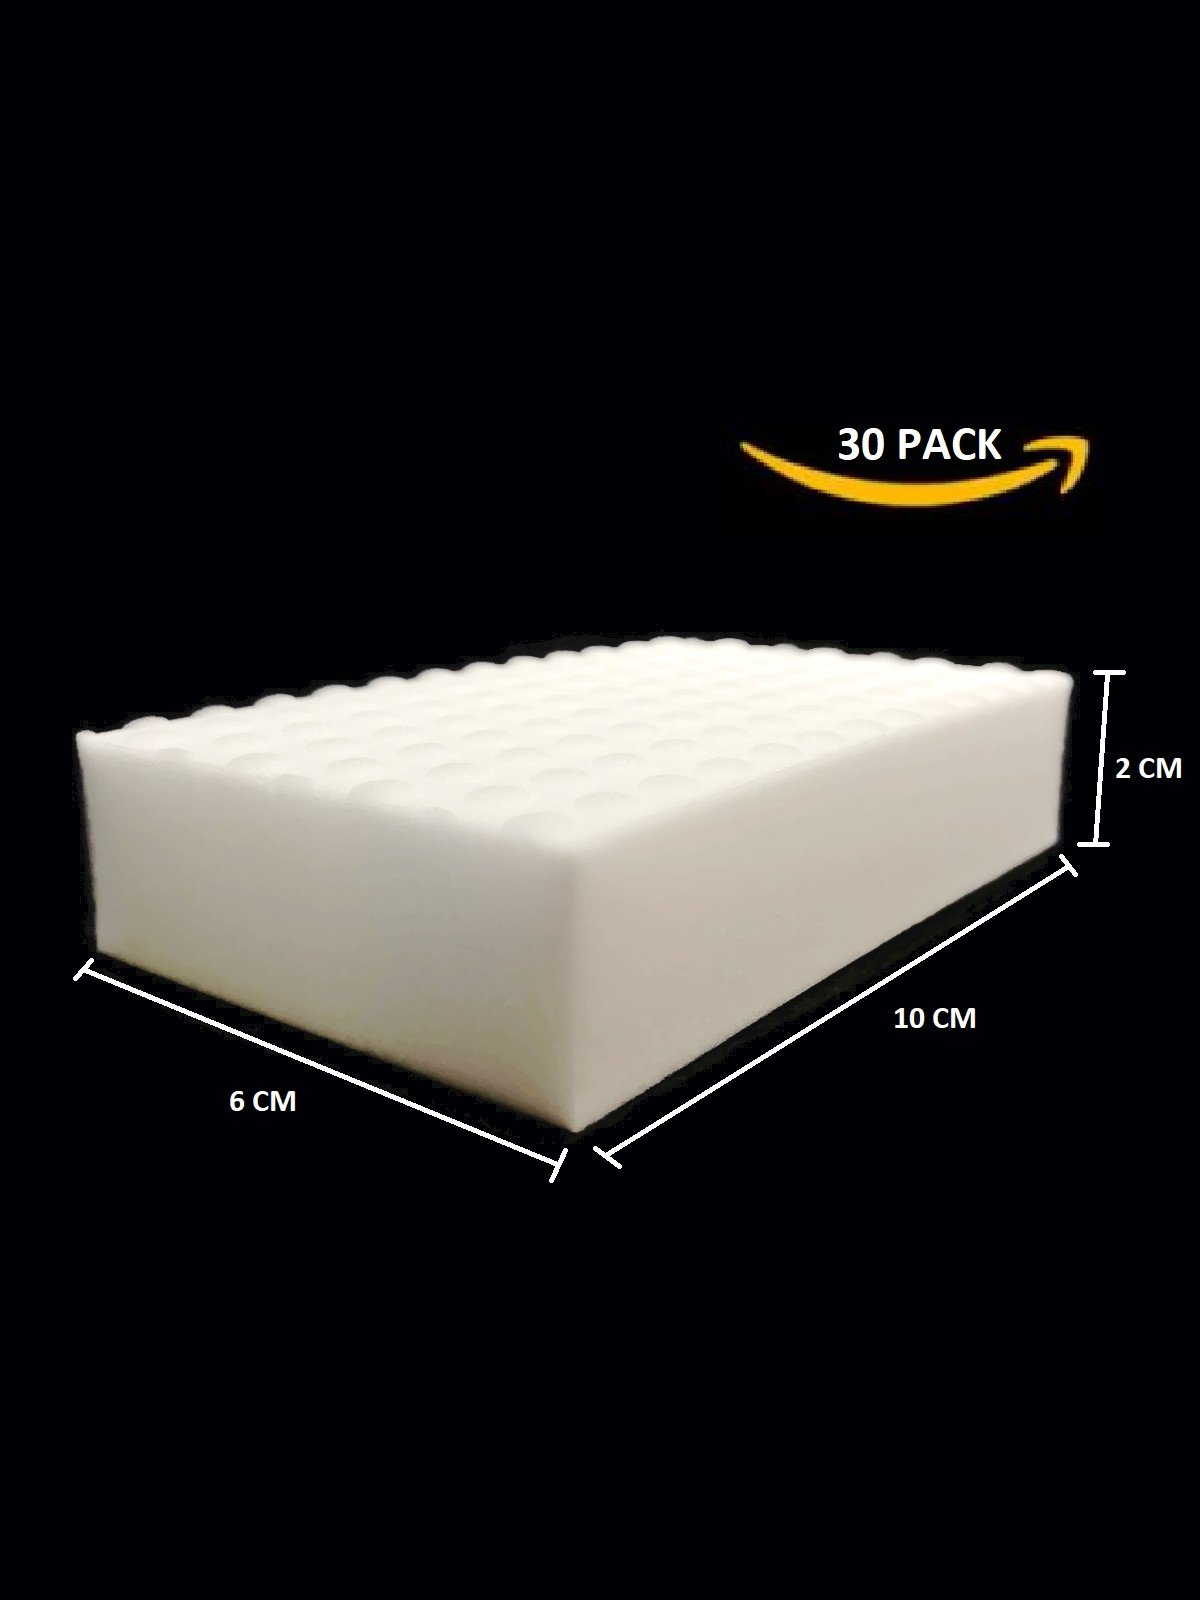 Magic Cleaning Eraser Sponge - Heavy Duty - 10x6x2 cm - Melamine Foam Universal Cleaner for Drywall, Marble, Leather, Wood, Metal. JUST ADD Water to Clean Any Surface-The Quality SUPPLIERS (30 Pack)